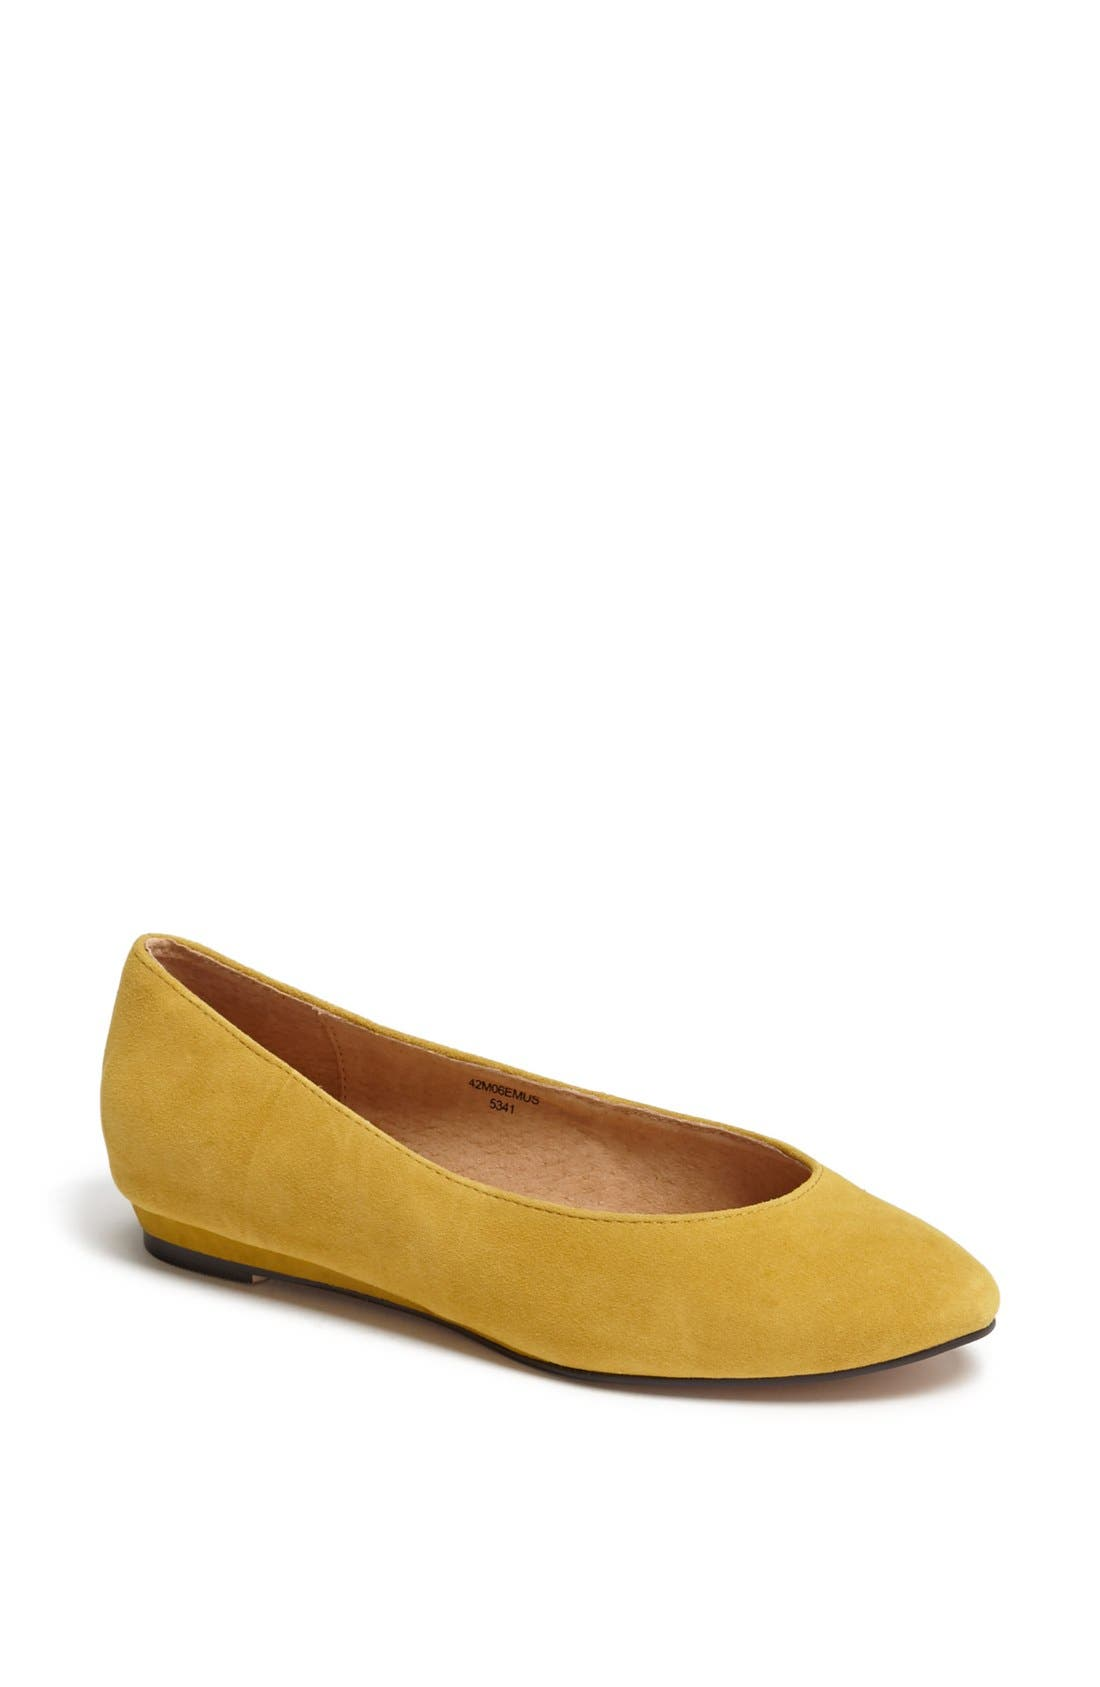 Alternate Image 1 Selected - Topshop 'Mello Mini Wedge' Court Shoe